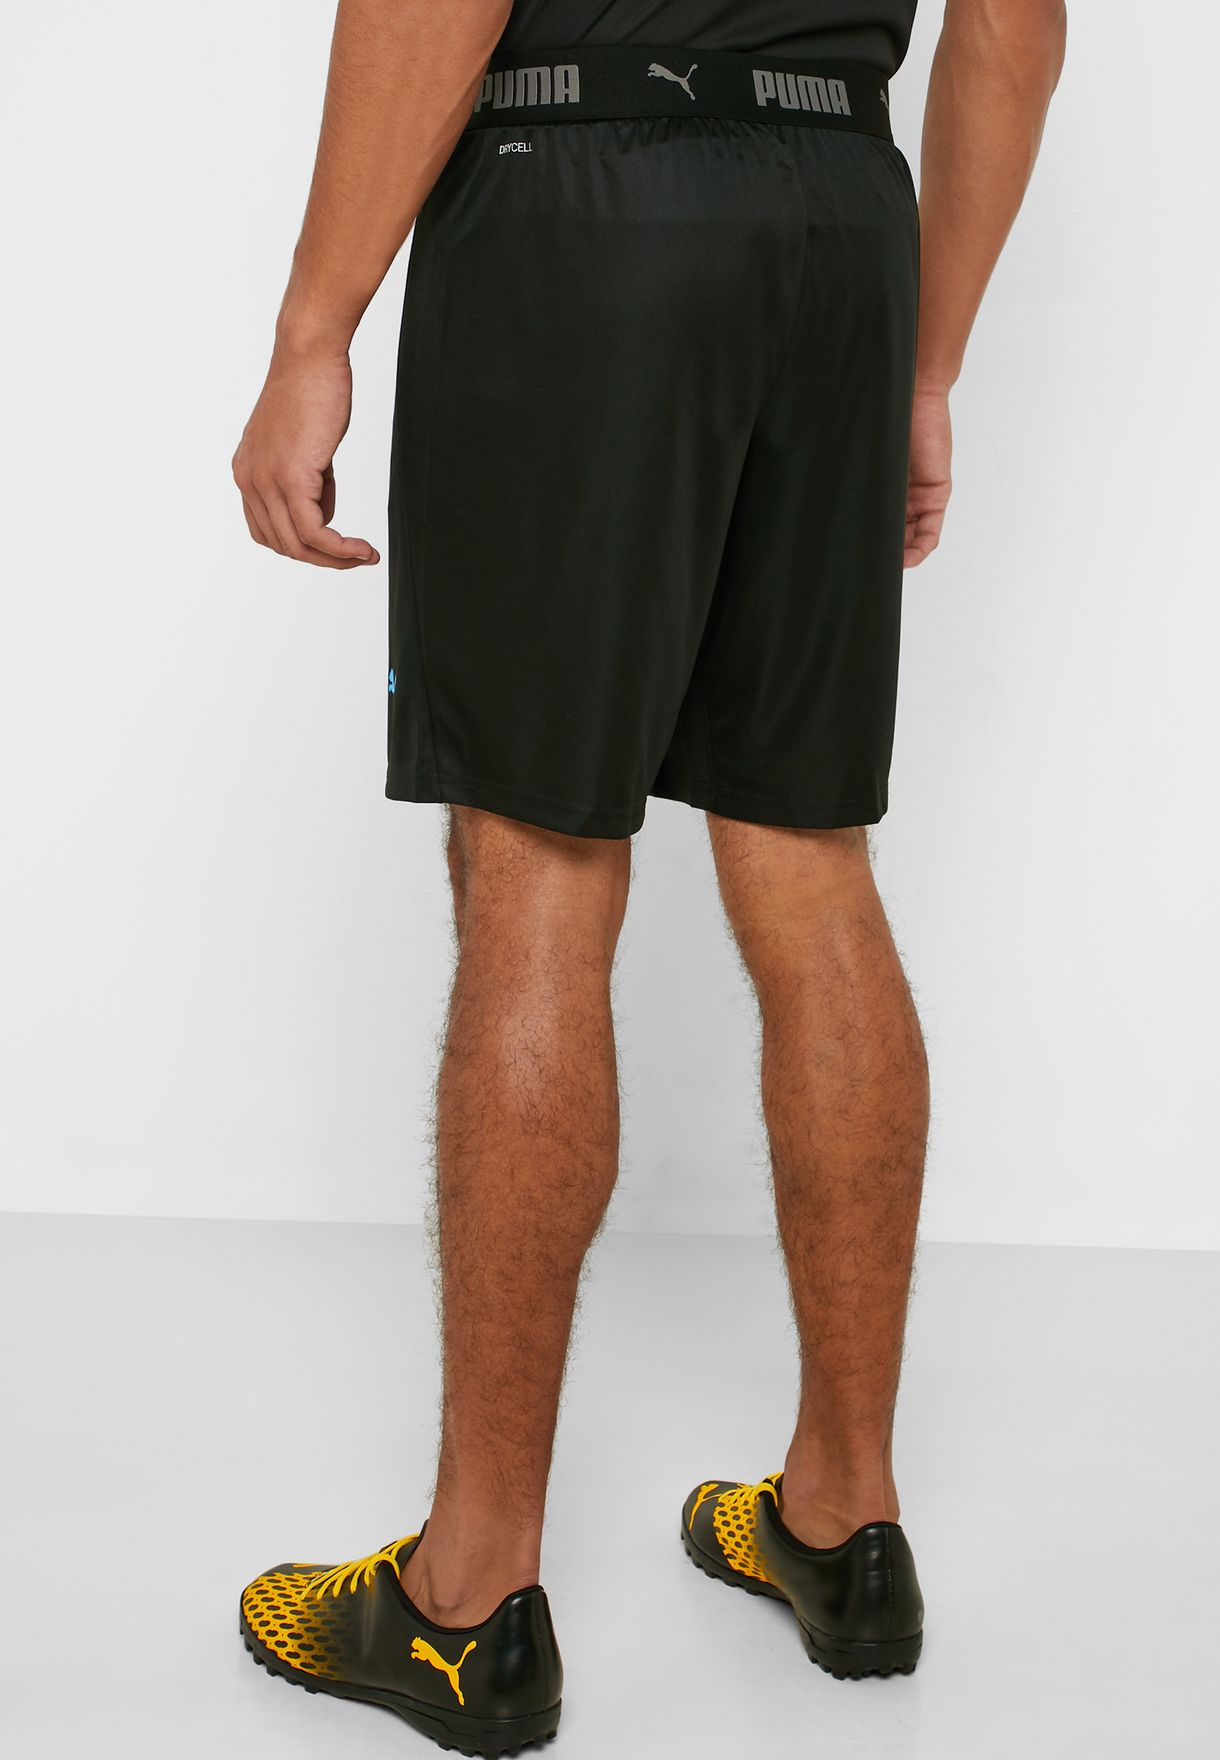 ftblNXT Shorts Puma Black-Luminous Blue